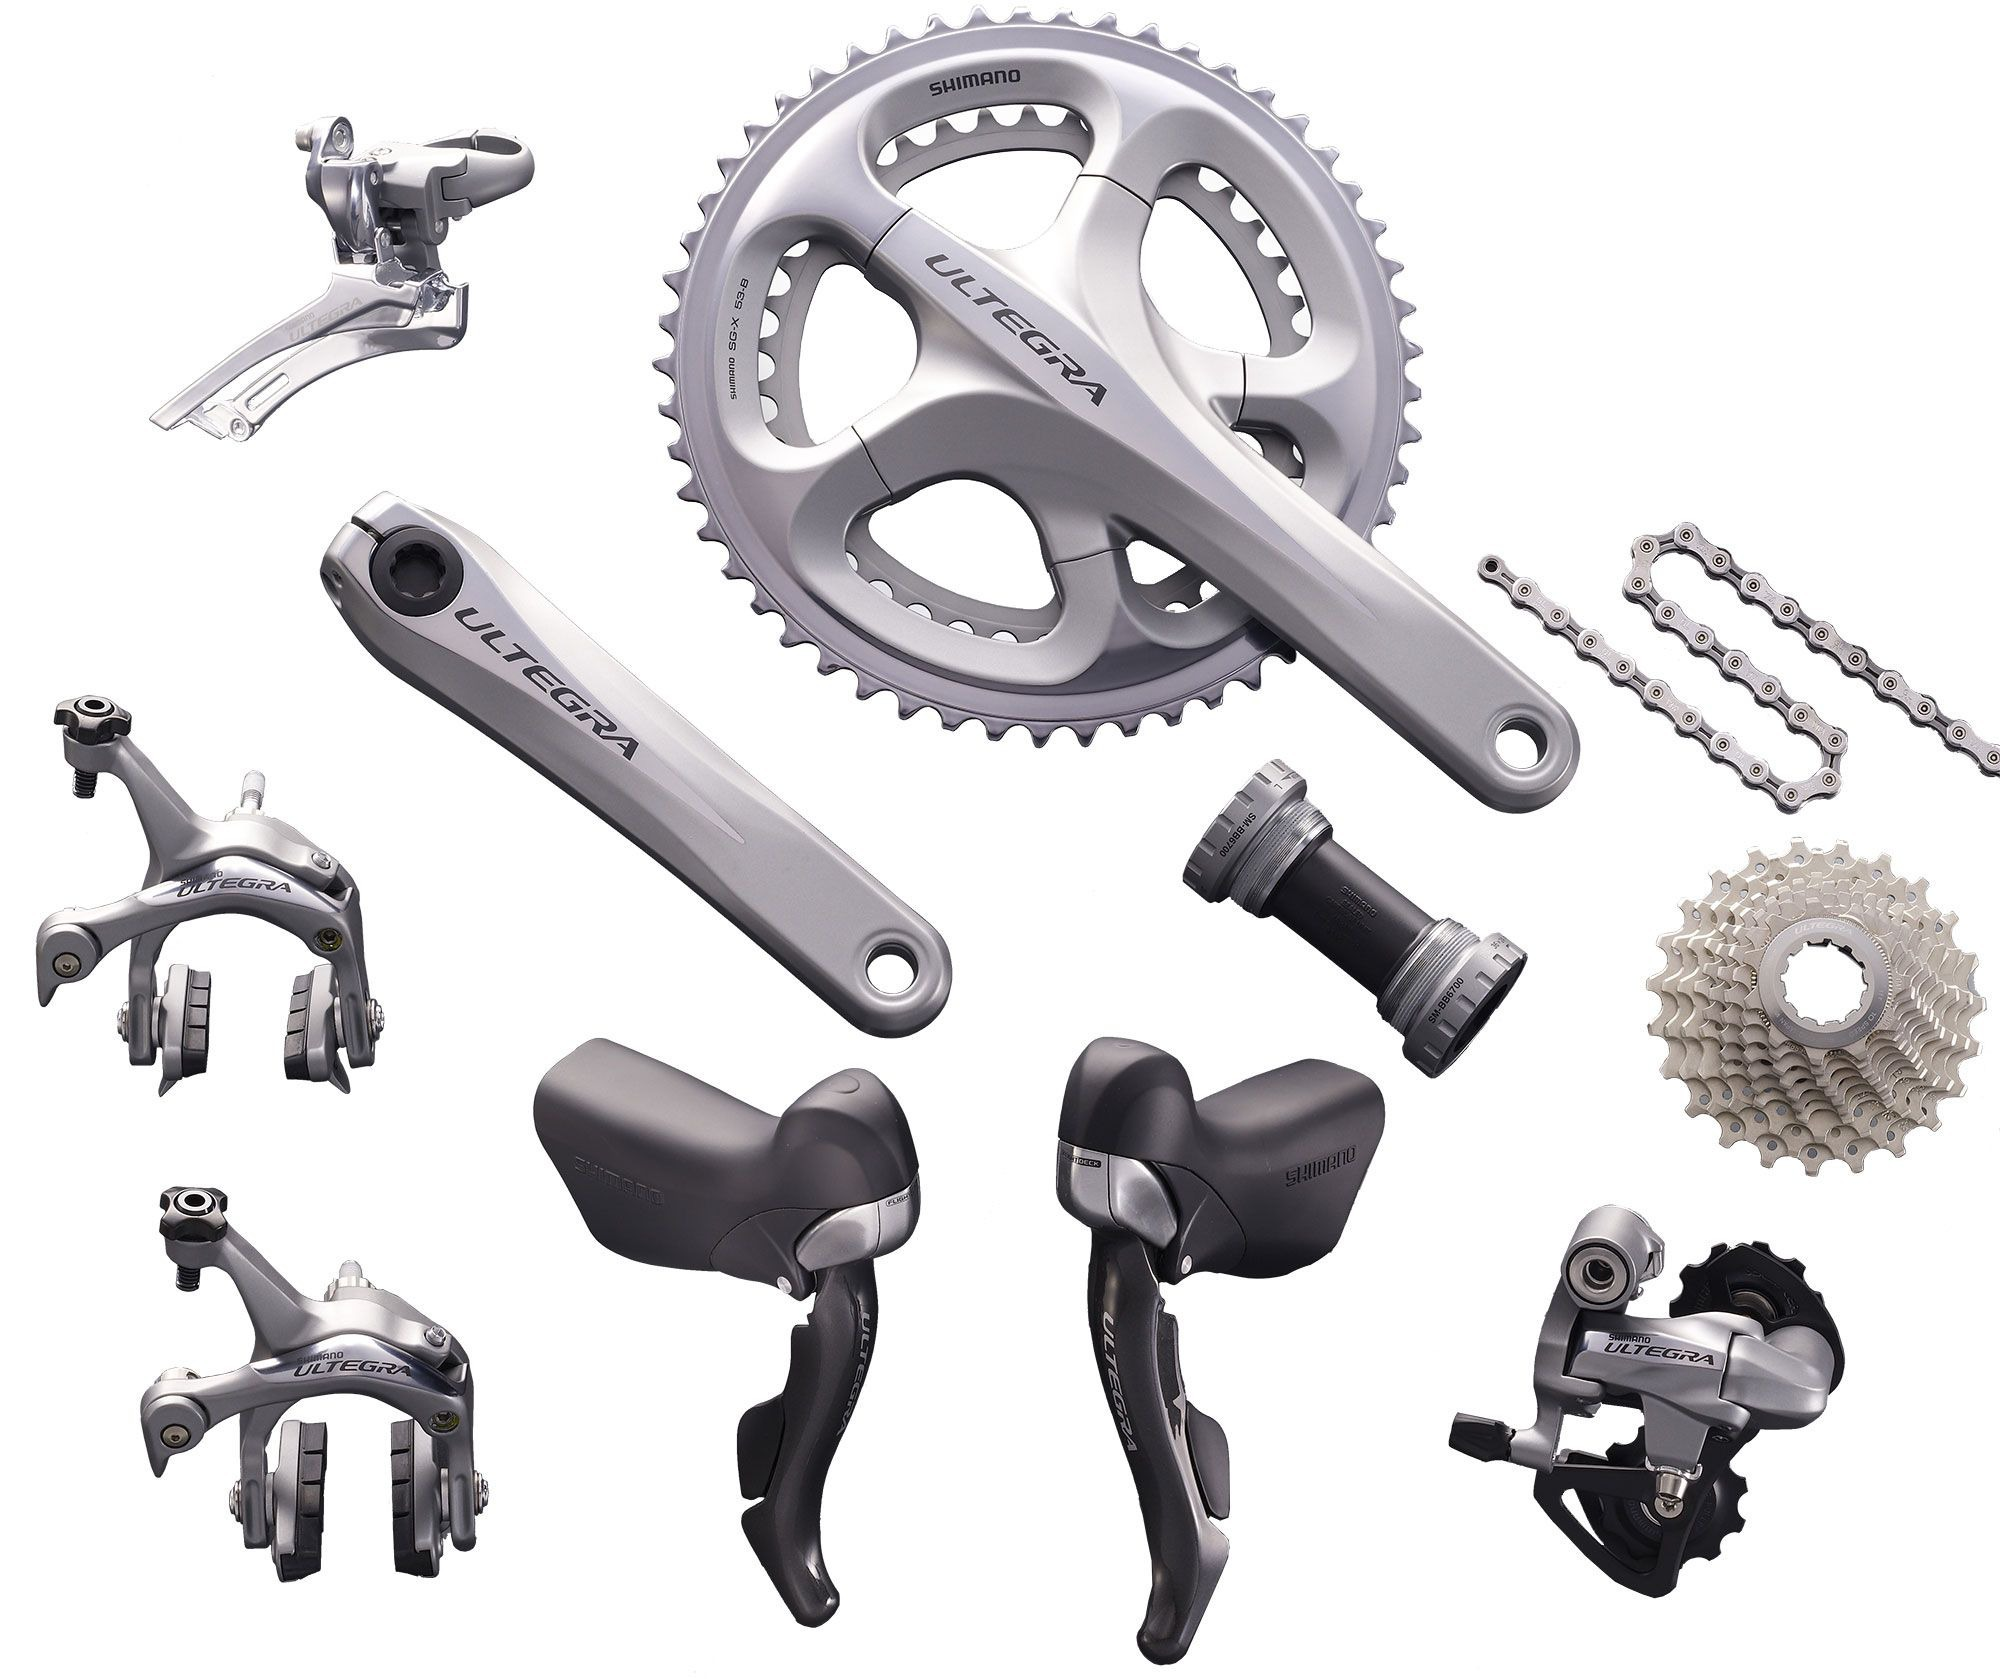 61a0c6d077d Shimano Ultegra 10-speed Components Kit - Oliver's Cycle Sports ...